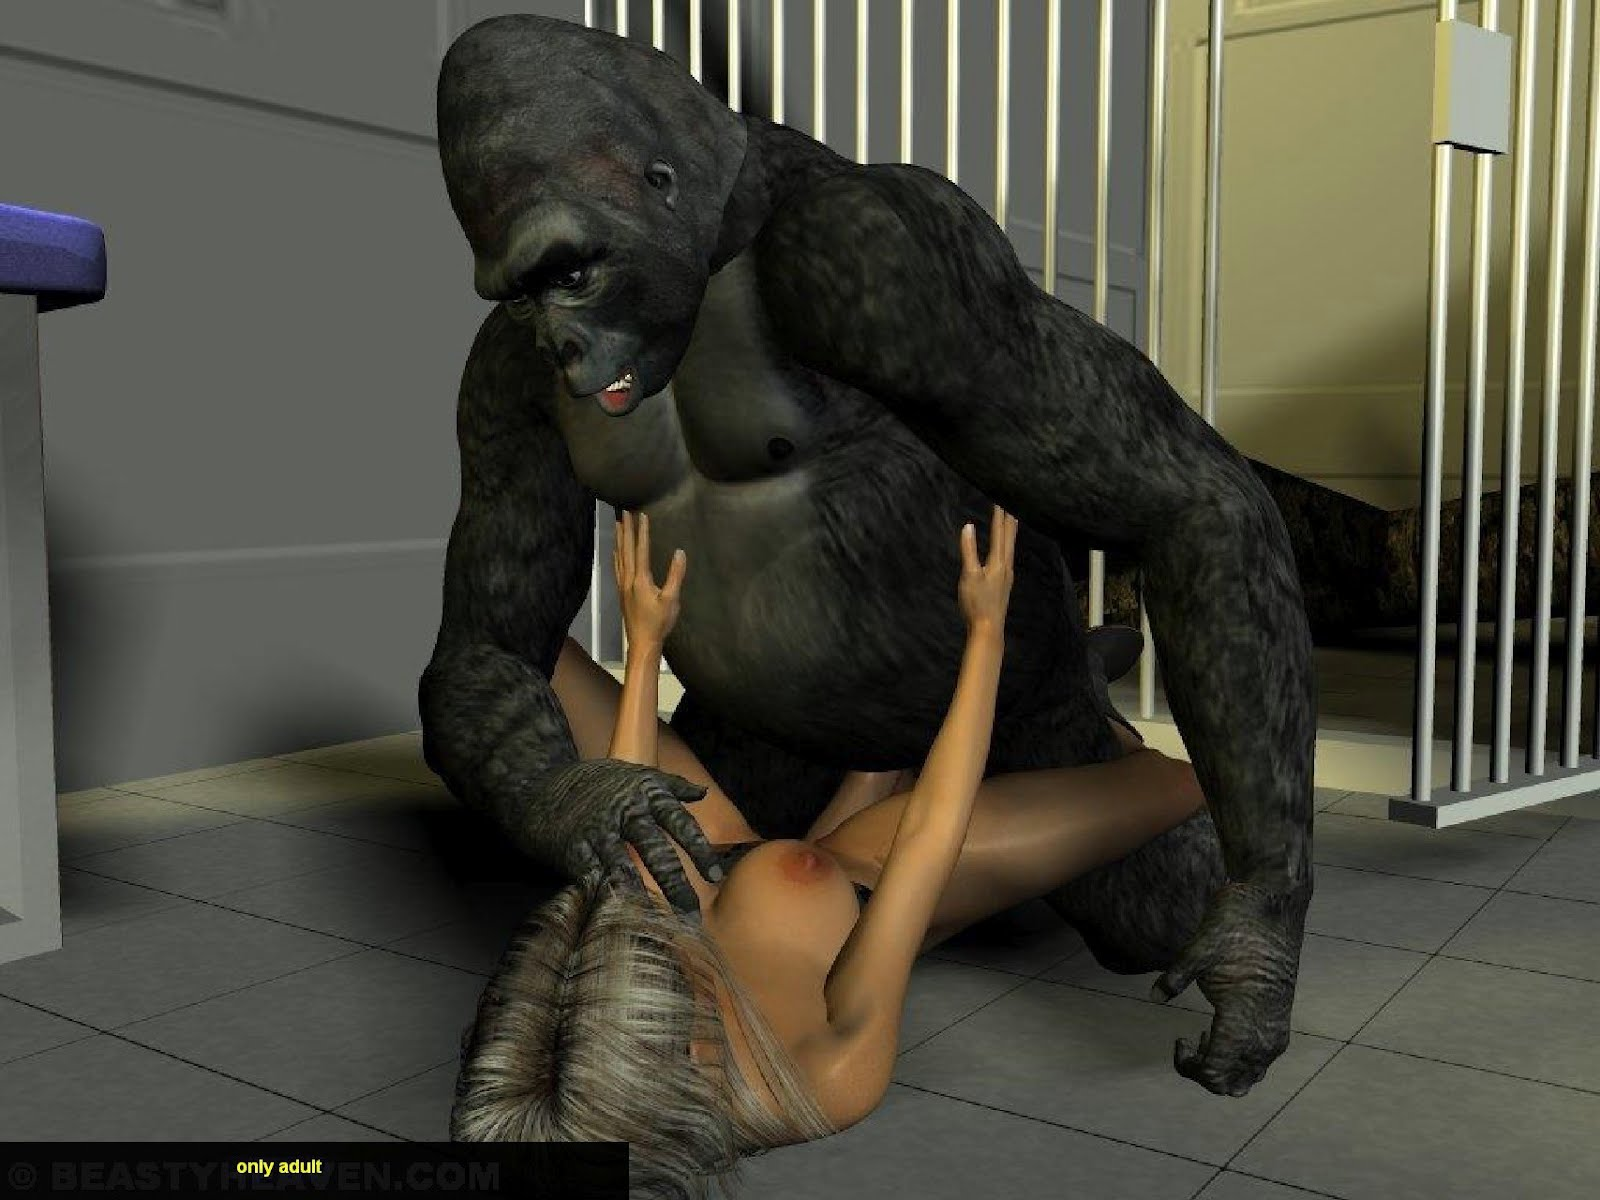 Gorillas fuck girl video porn scenes